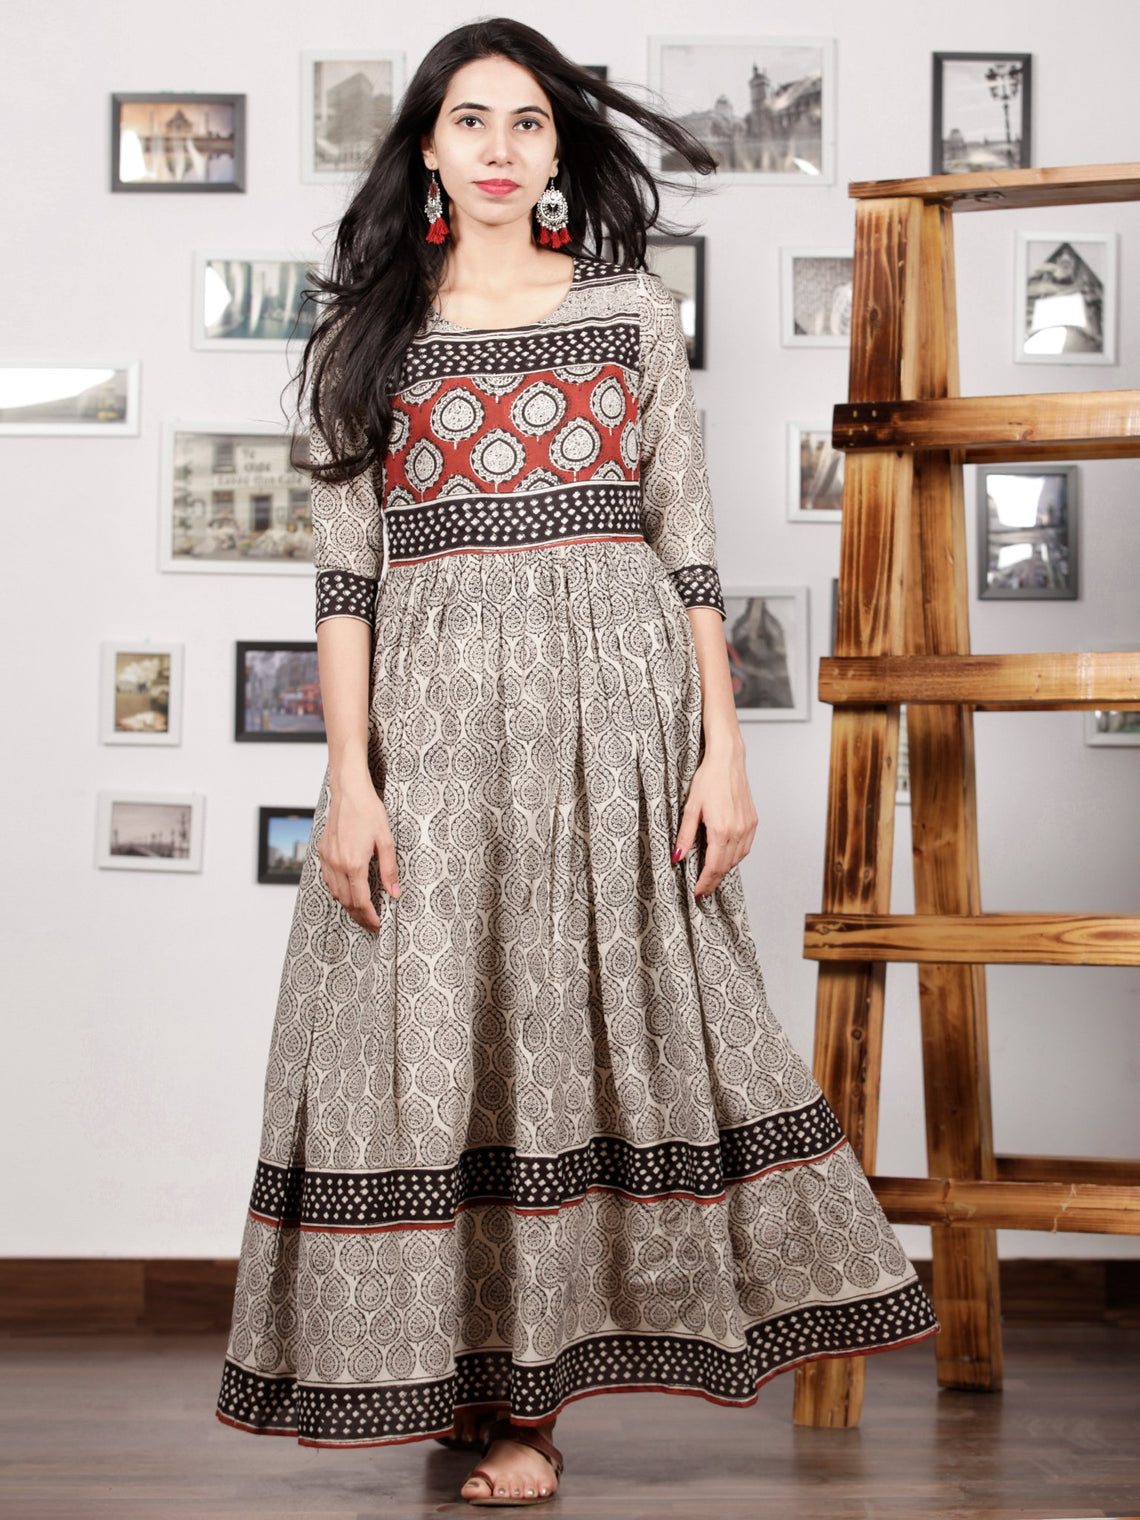 Naaz Kafeeya - Ivory Red Black Hand Block Printed Long Cotton Tier Dress With Gathers & Lining - DS53F001